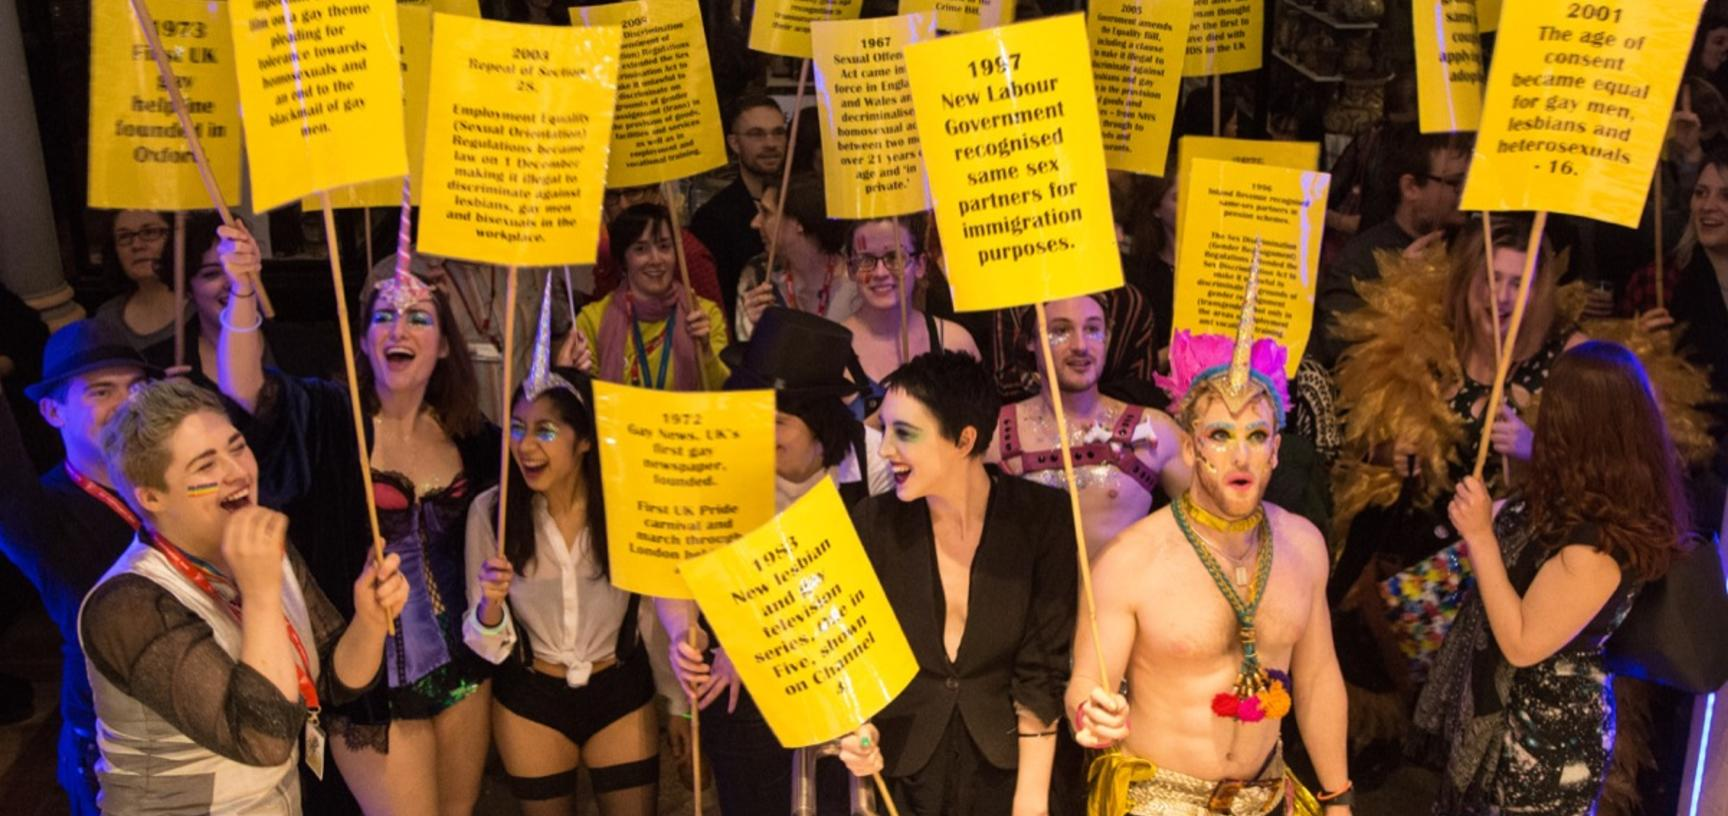 Party at the Pitt, 2017. More than four hundred people attended this flagship event for 'Out in Oxford', an initiative to reveal and celebrate the LGBTQ+ stories held within the University of Oxford's museums and collections.